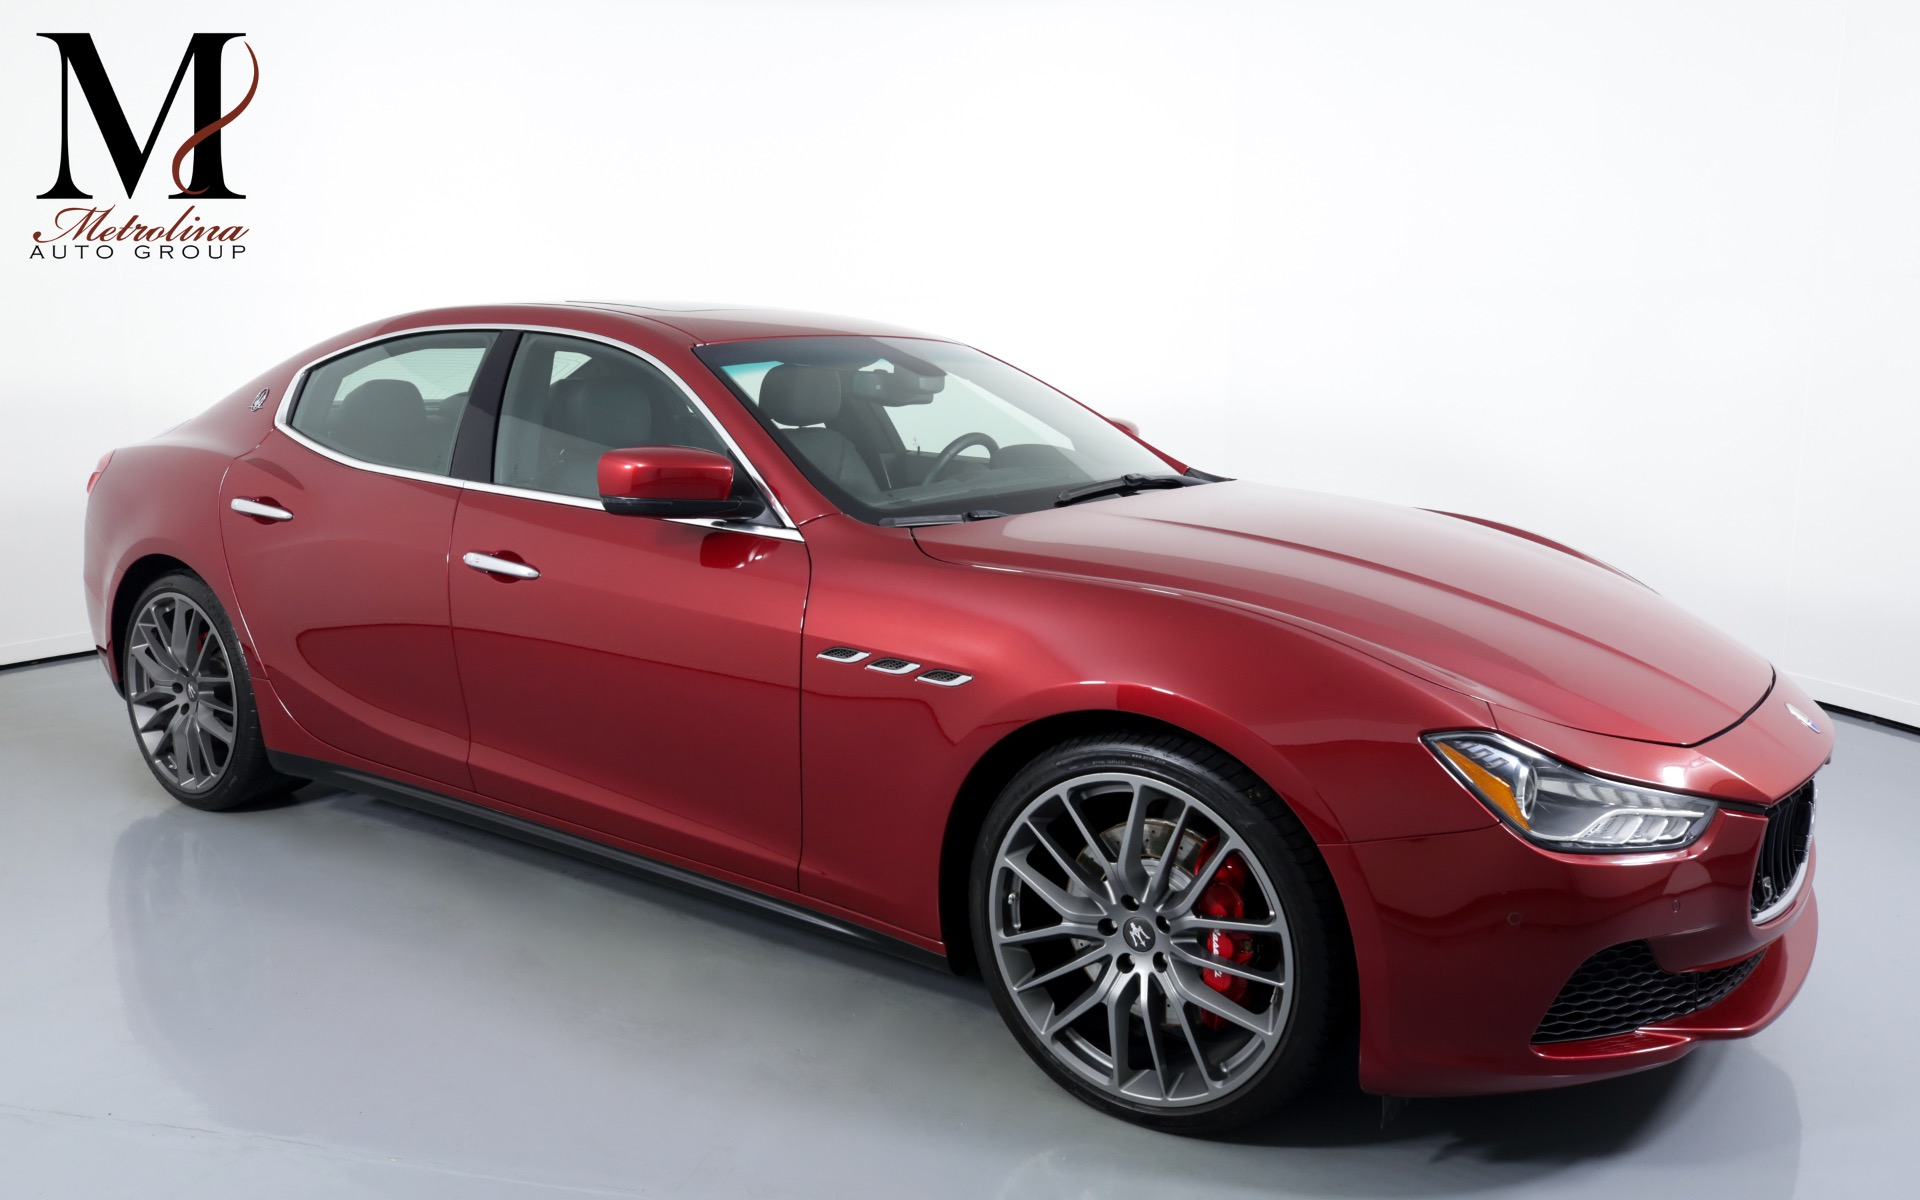 Used 2014 Maserati Ghibli S Q4 for sale Sold at Metrolina Auto Group in Charlotte NC 28217 - 1